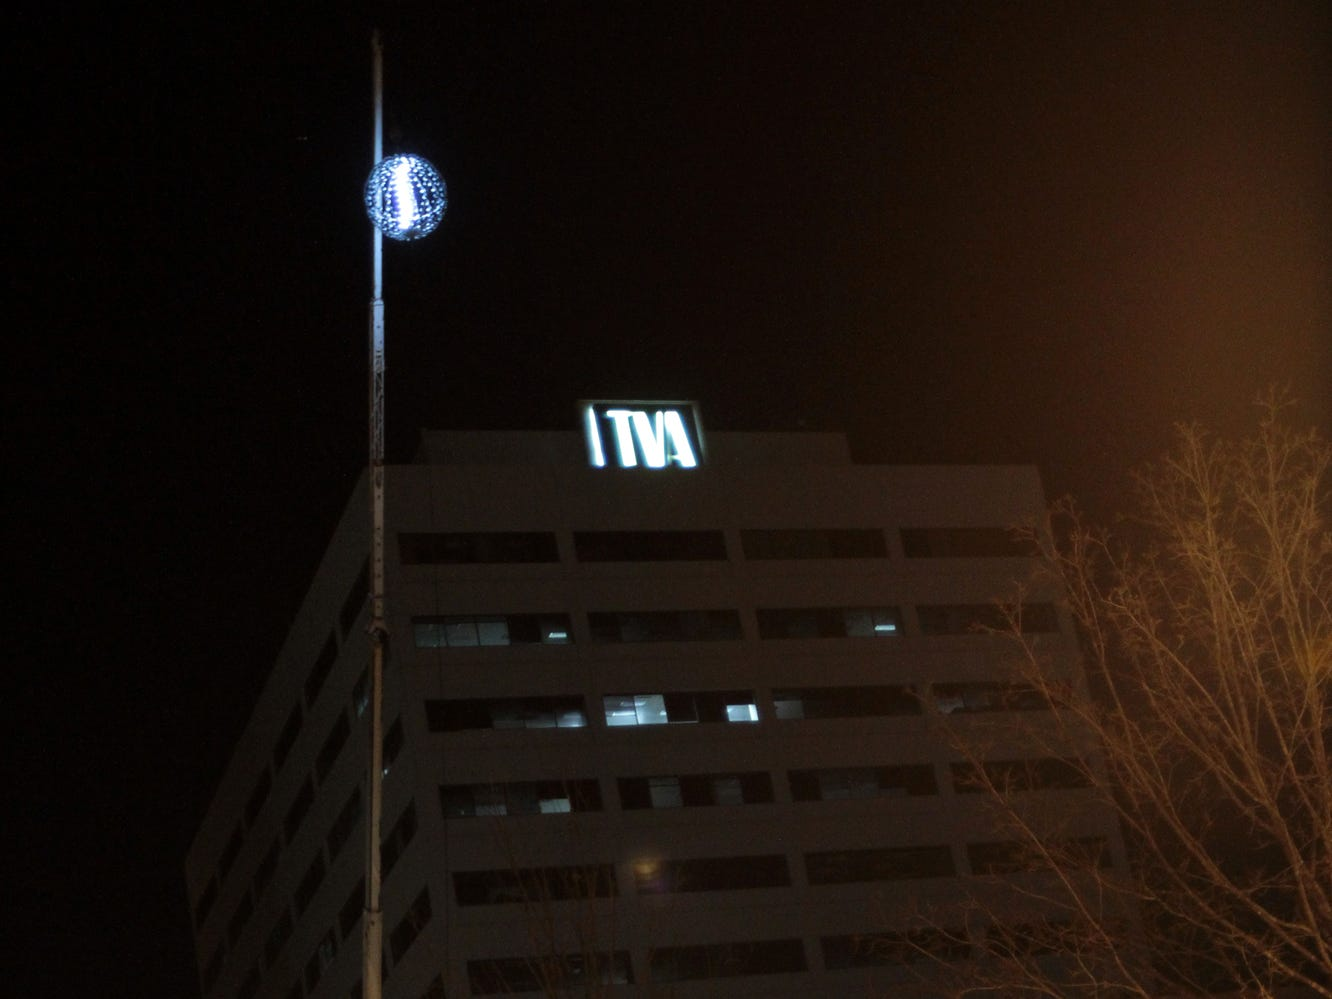 A lighted ball hangs high over the outdoor stage at the Market Square Mall during the New Year's Eve edition of First Night Knoxville on Friday, December 31, 2010. The ball will be lowered to the ground at midnight bringing in the year 2011. Photo By Justin Fee